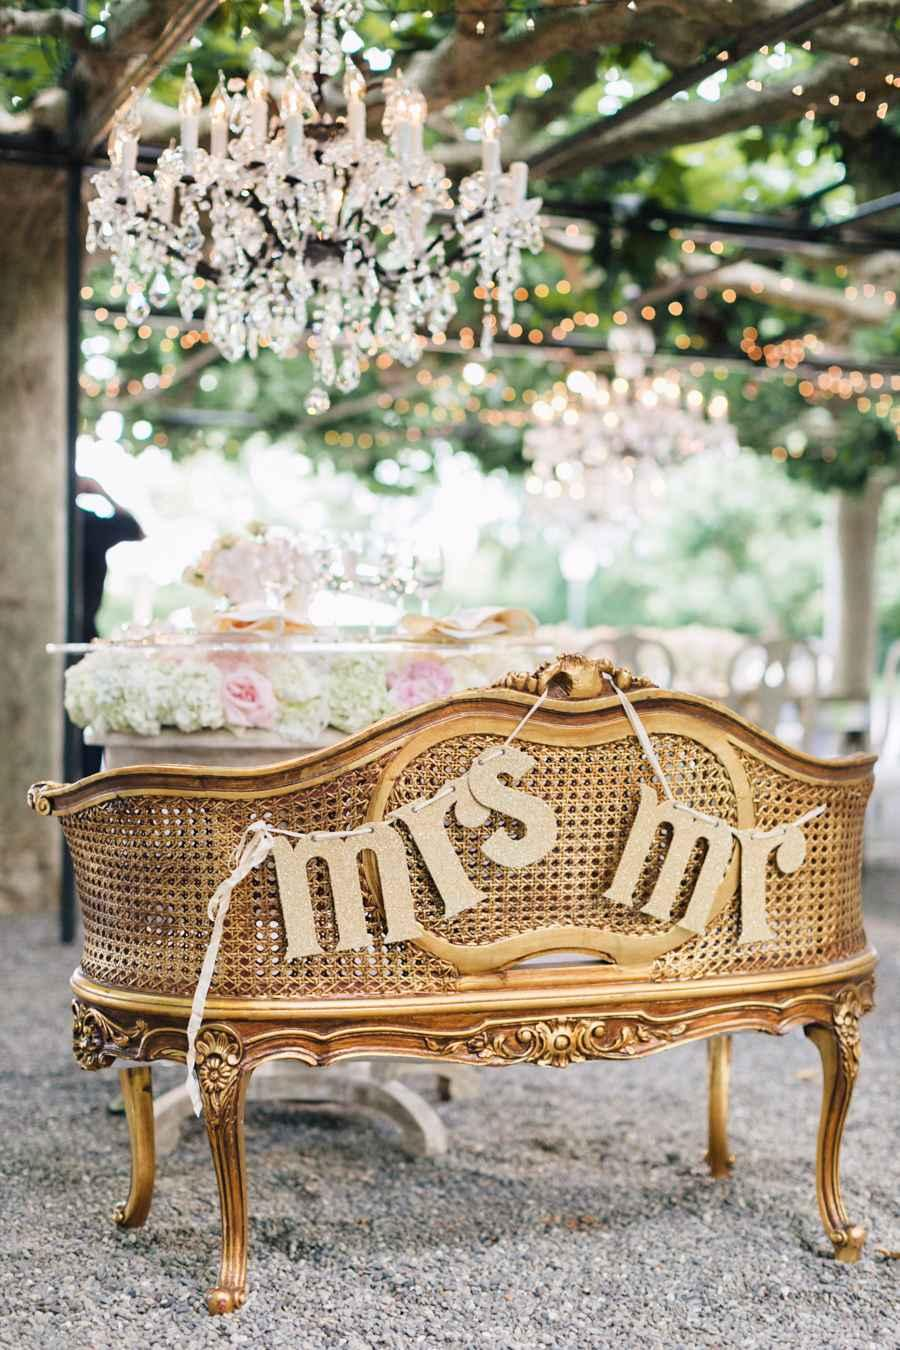 Golden wedding decoration: 60 ideas with photos to inspire 14